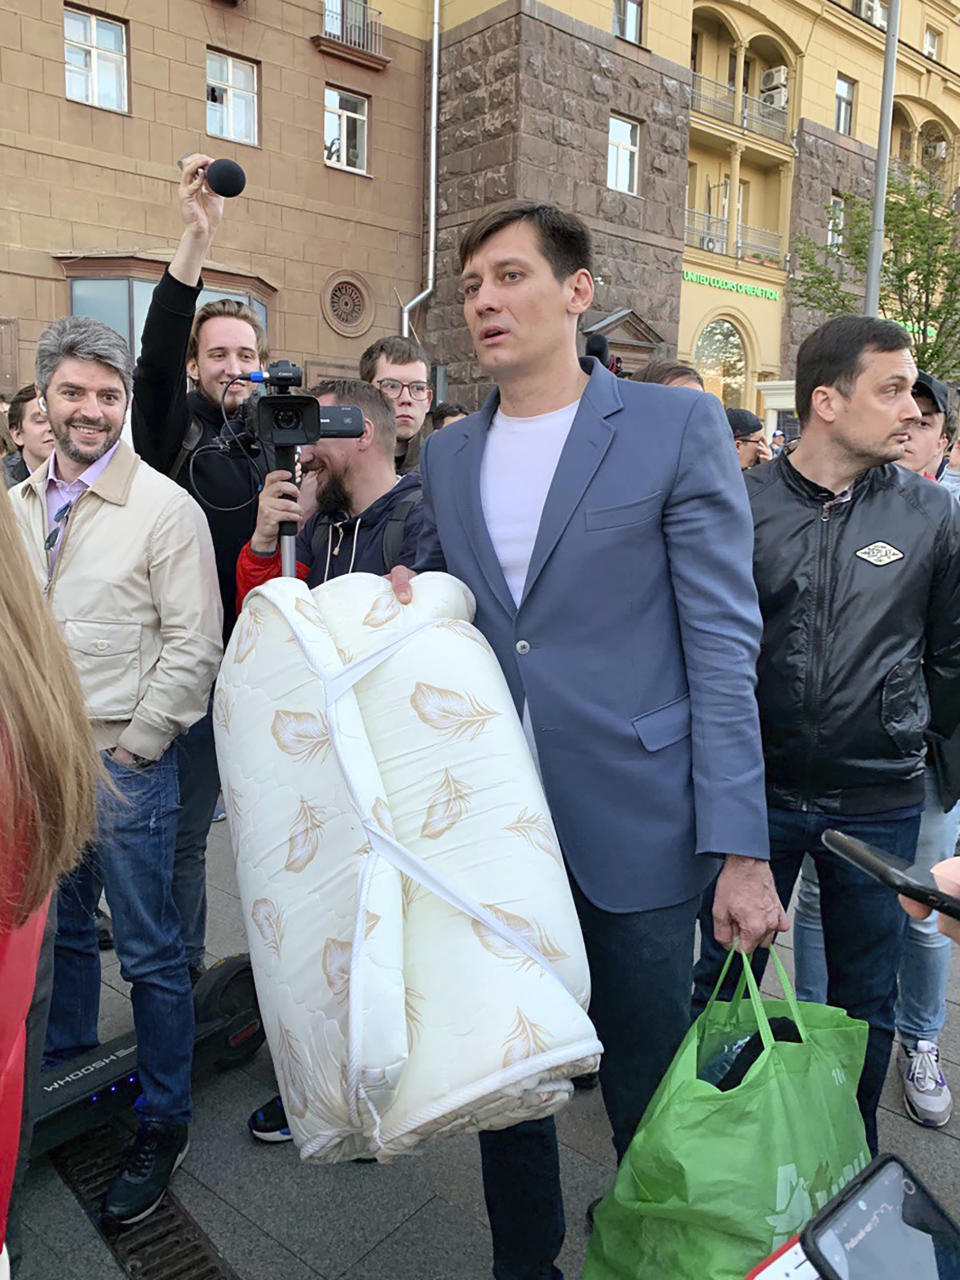 Dmitry Gudkov, center, a former Russian lawmaker who has aspired to run again for a parliament seat, is surrounded by people after being released in case of an expiration of 48 hours of detention in Moscow, Russia, Thursday, June 3, 2021. Police have released a well-known Russian opposition politician from custody after holding him for two days. Gudkov was detained by police at his country house on Tuesday in connection with an investigation into money owed to the city for rental of an office space. Gudkov's attorney, Mikhail Biryukov, said it was not clear whether the Thursday release of Gudkov meant the investigation was still active. (AP Photo/Vladimir Kondrashov)